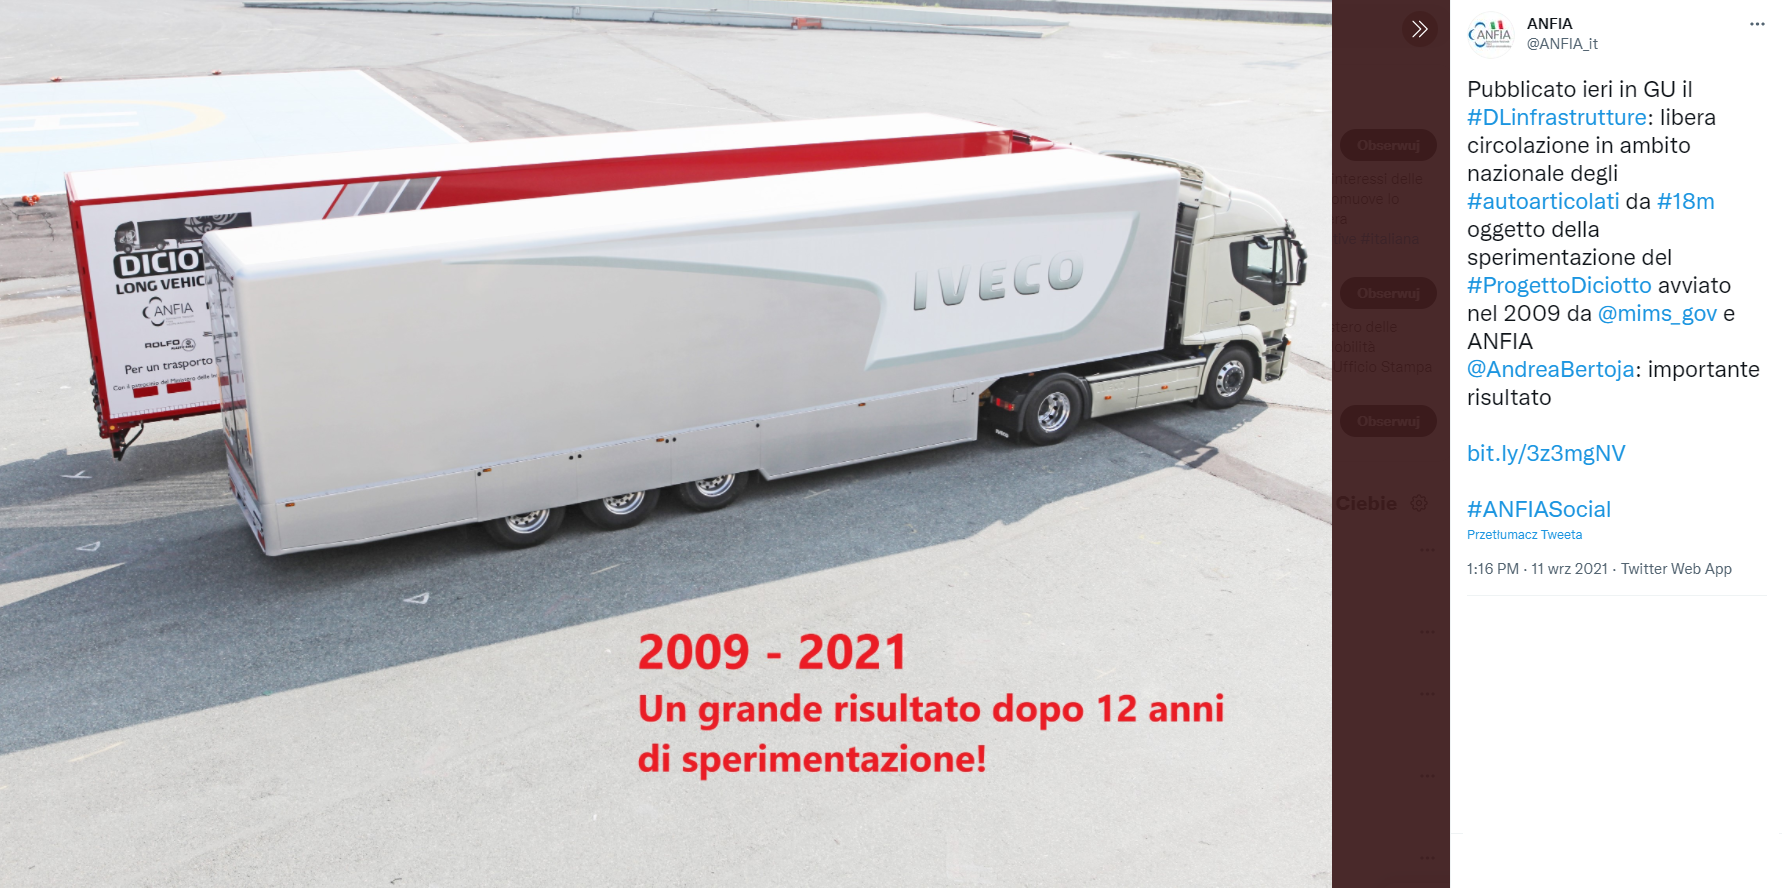 Italy introduces 18-metre-long vehicle sets on the roads